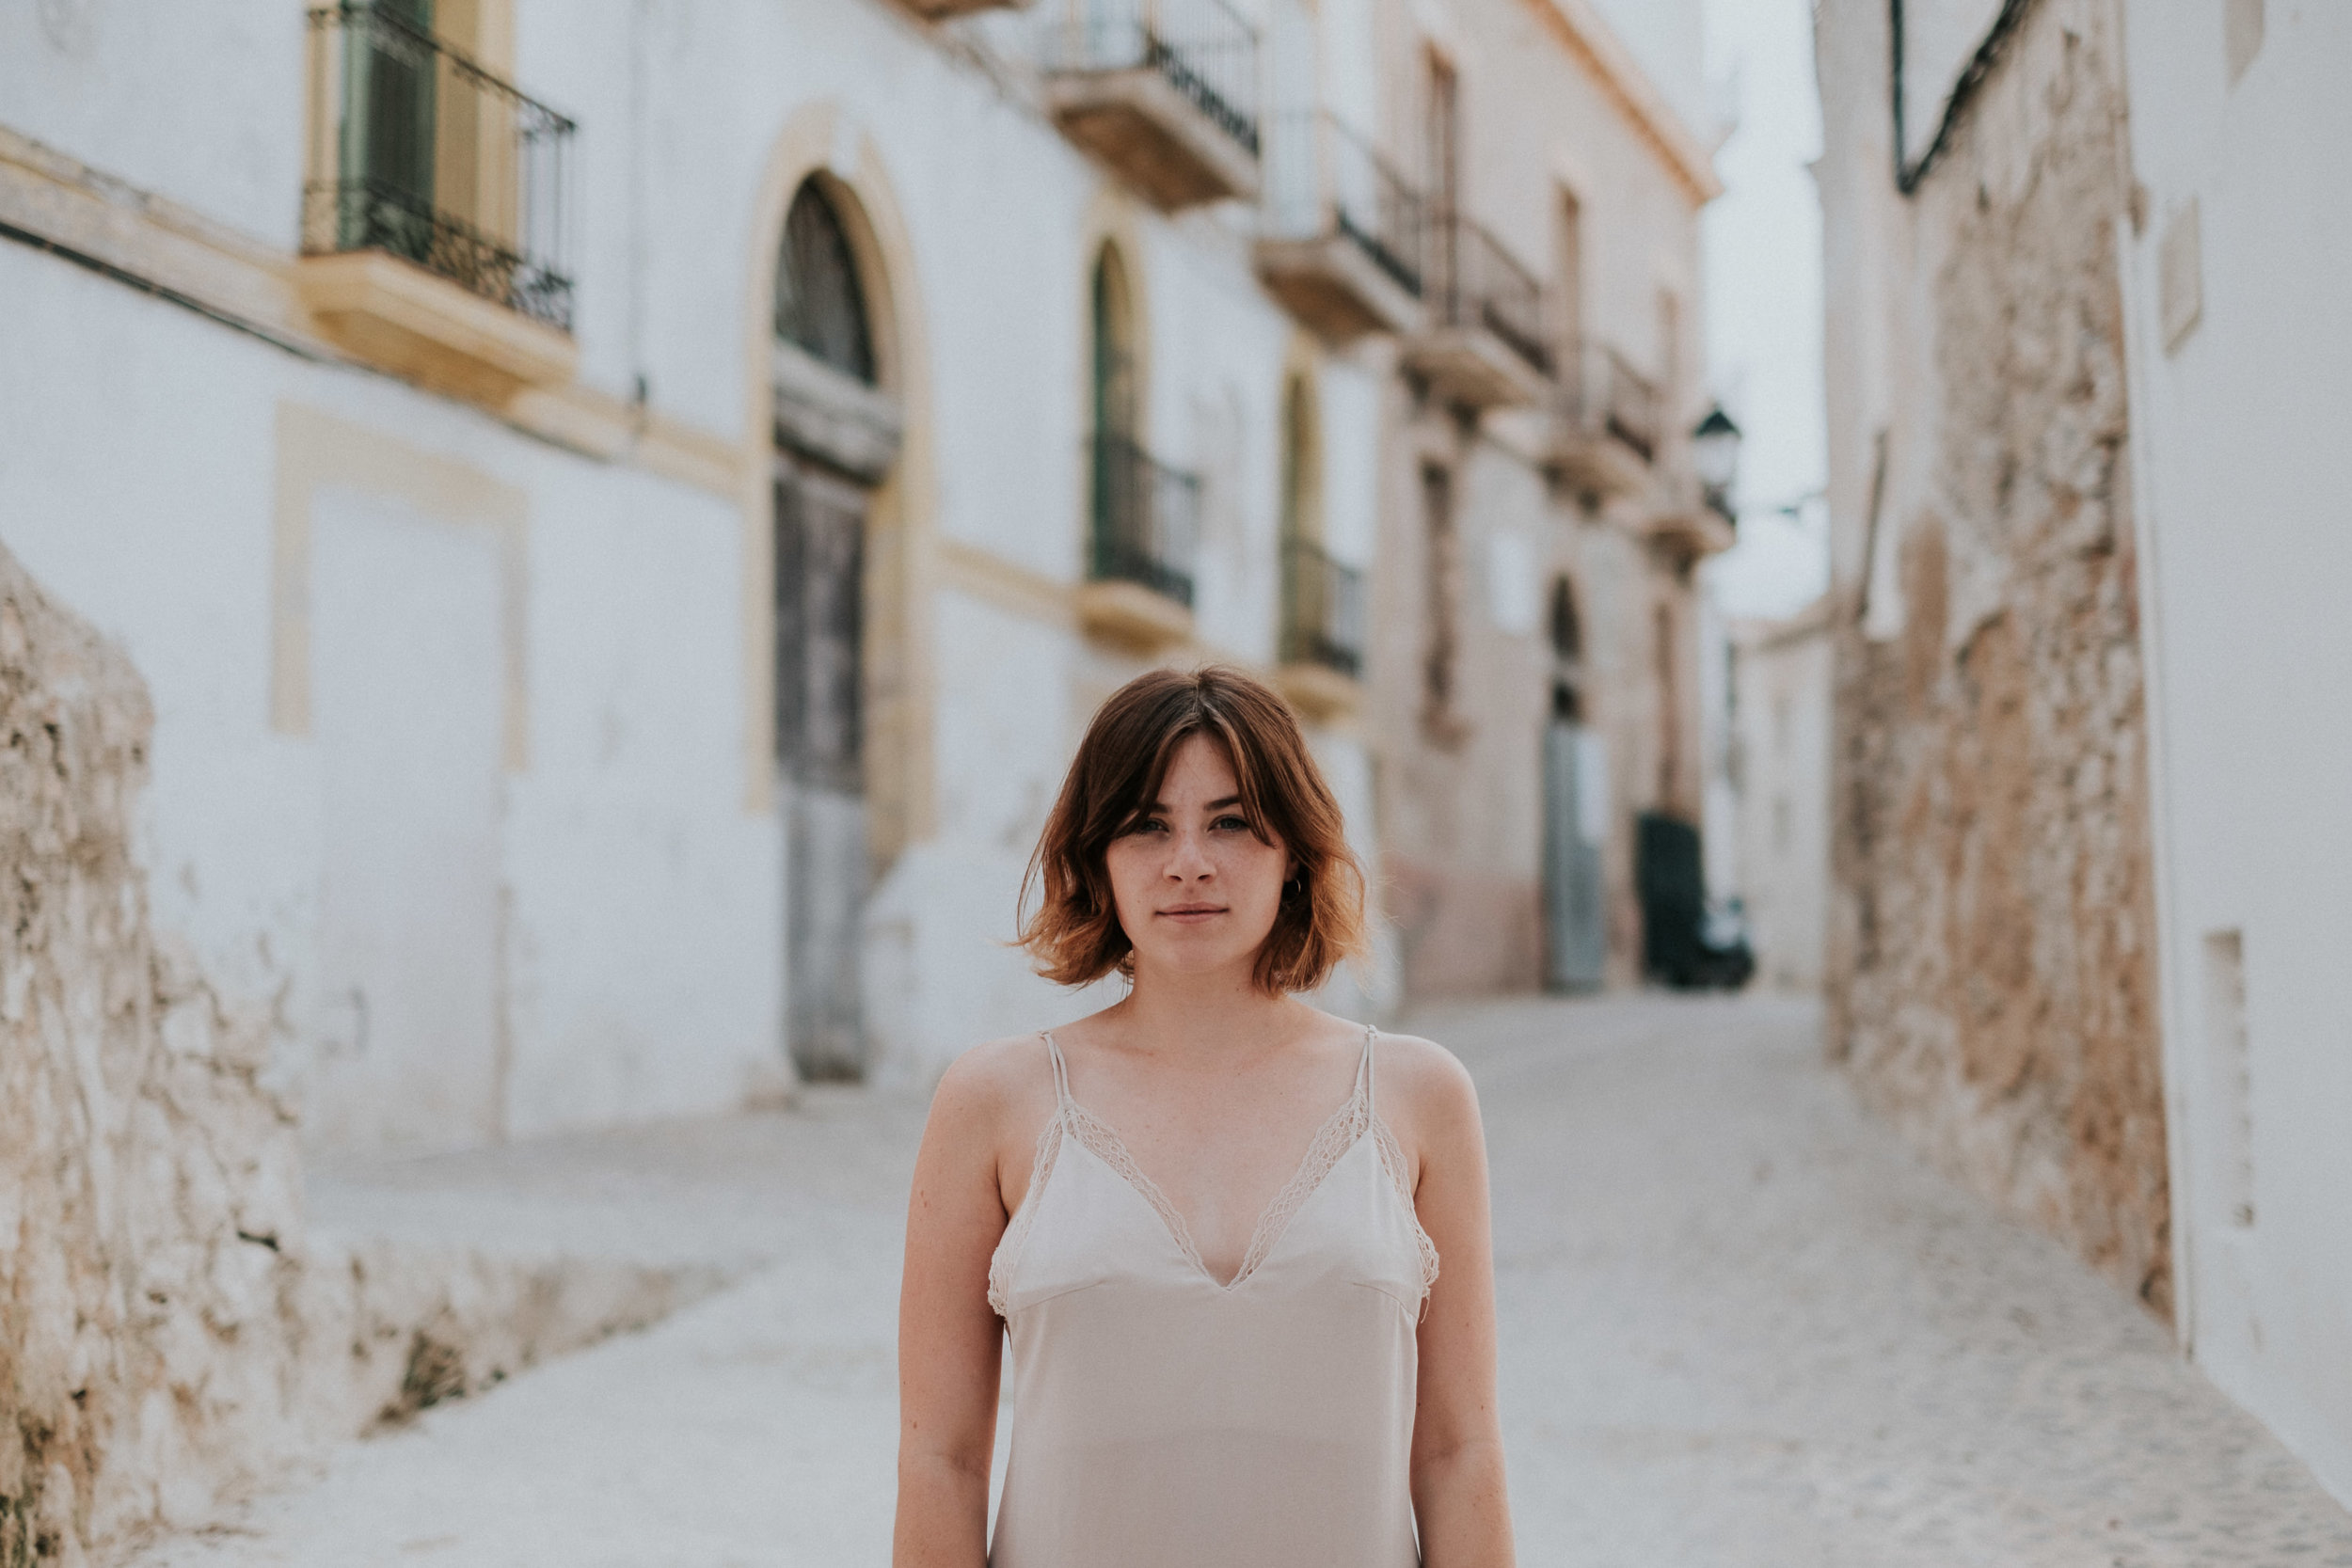 Sara Lincoln Photography Ibiza Portrait Alternative Wedding Photographer Joanna Nicole Photography (42 of 63).jpg